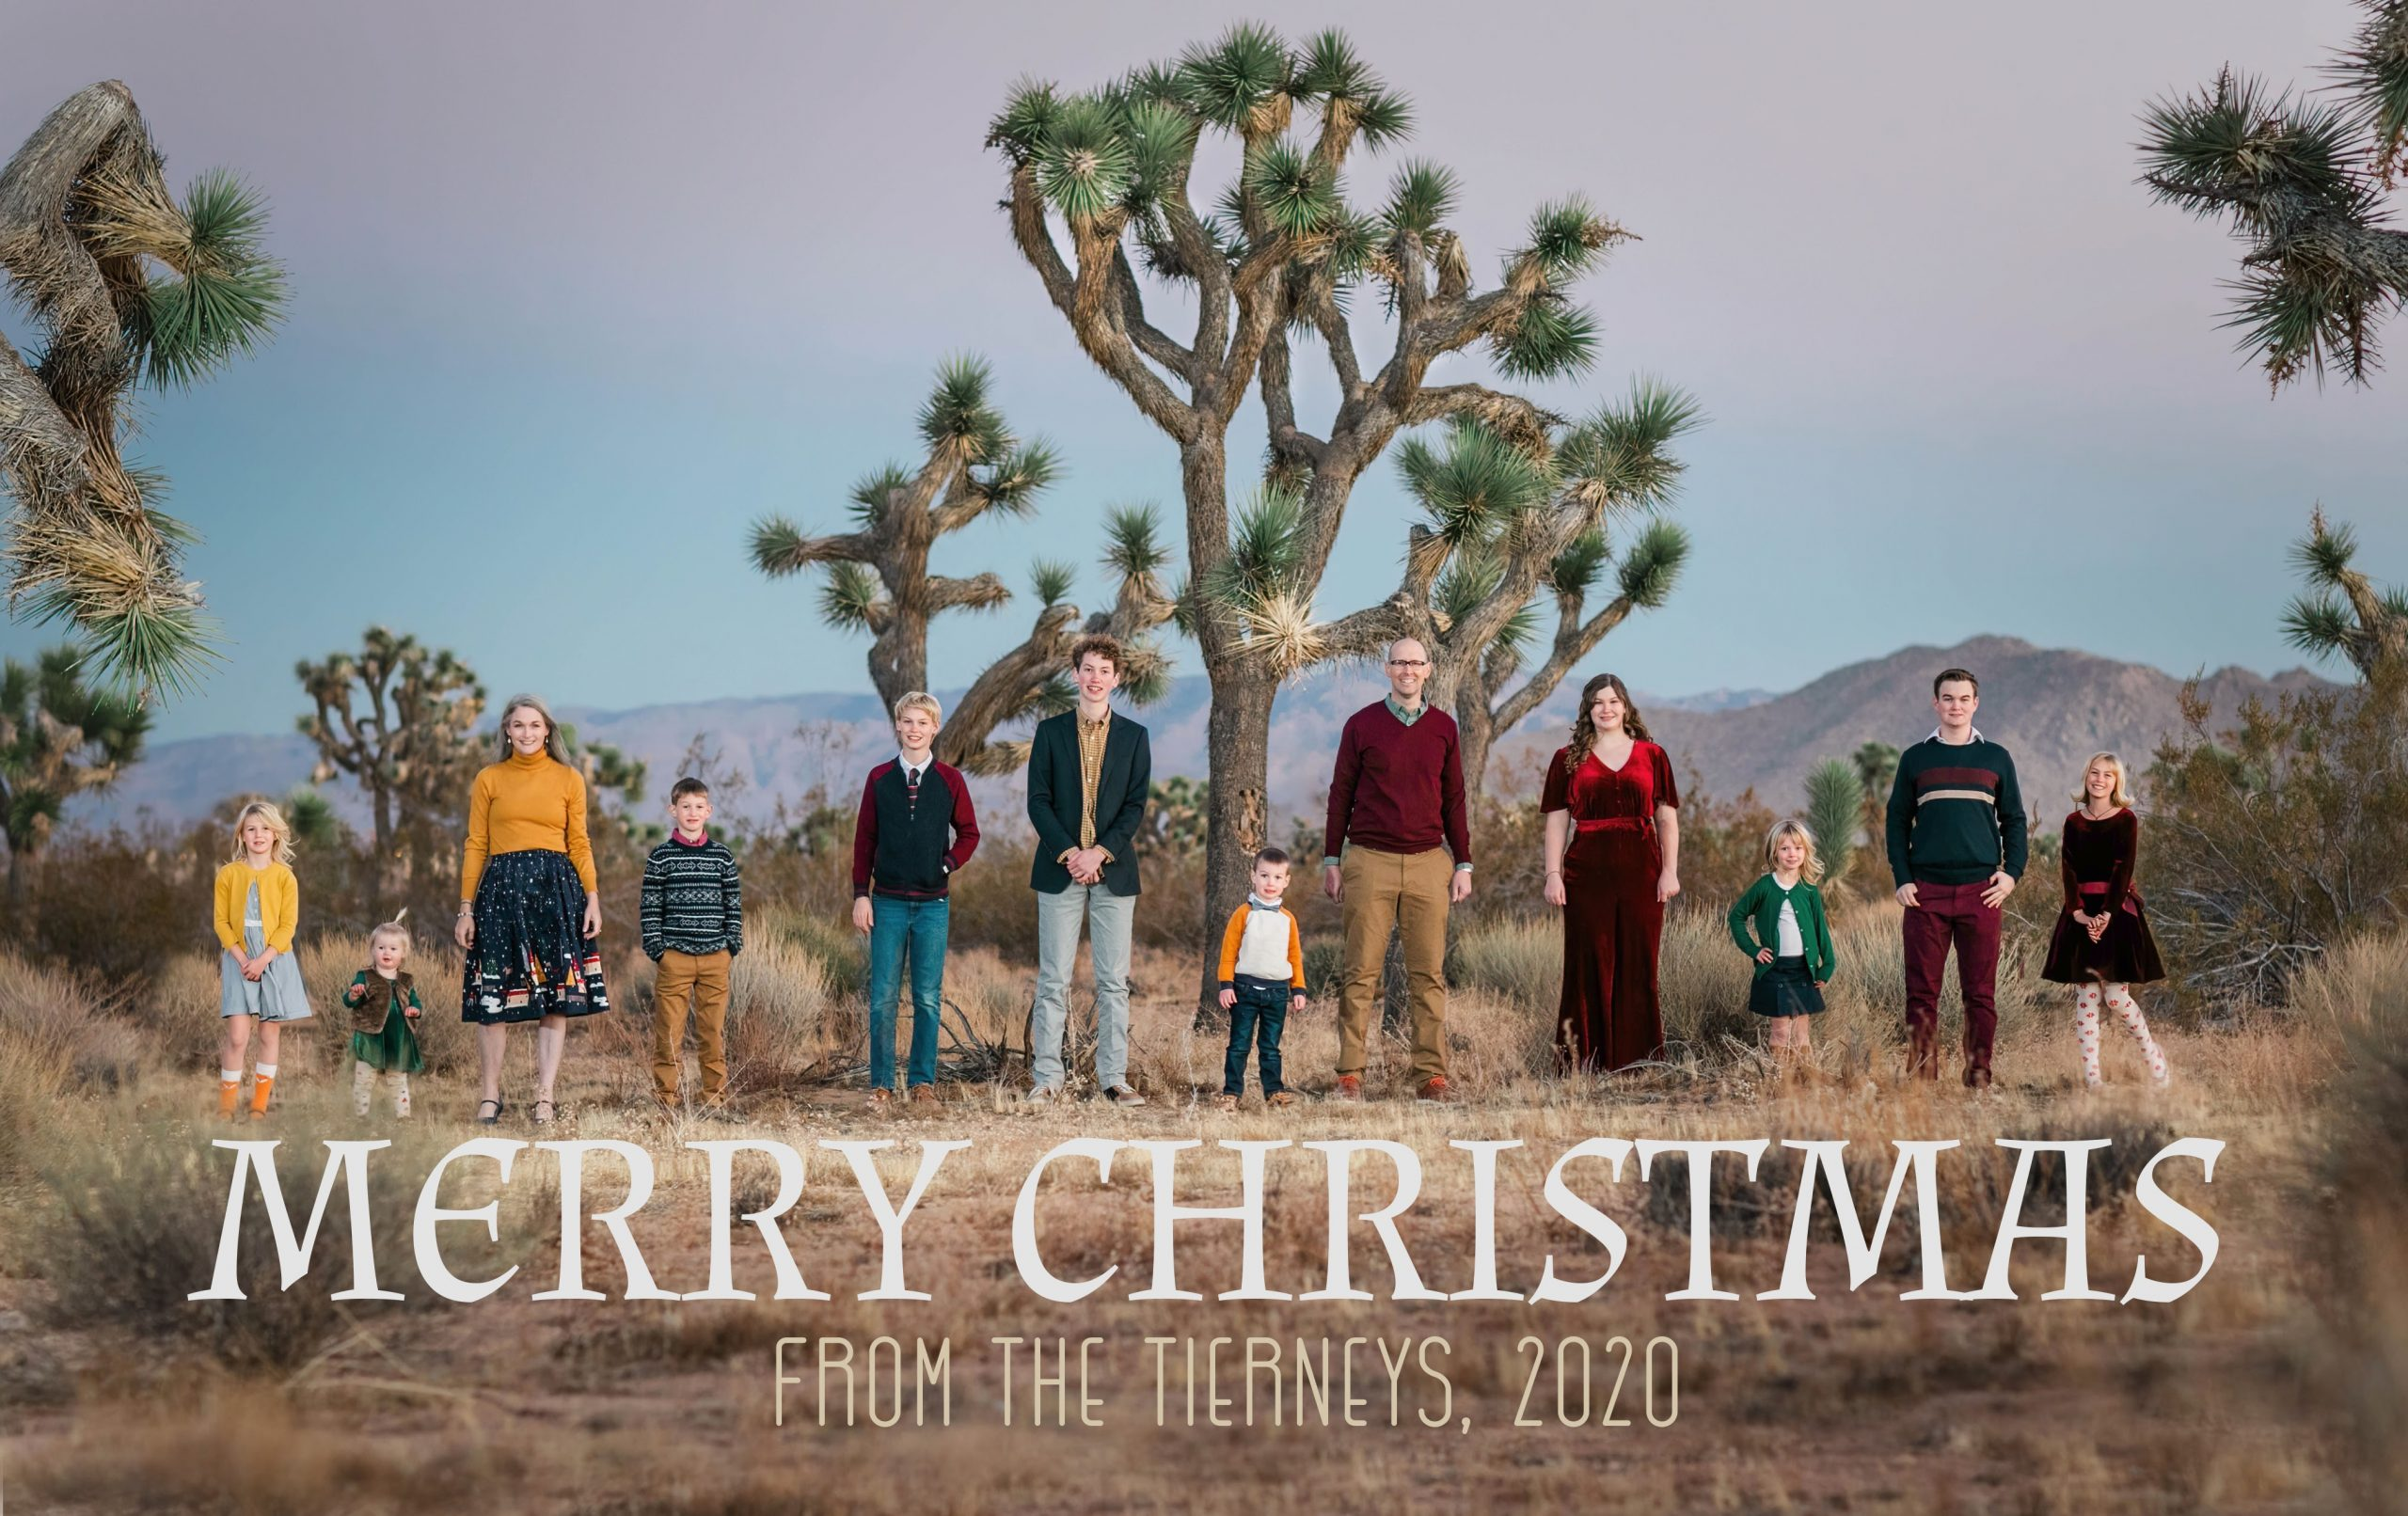 Merry Christmas from the Tierneys, 2020